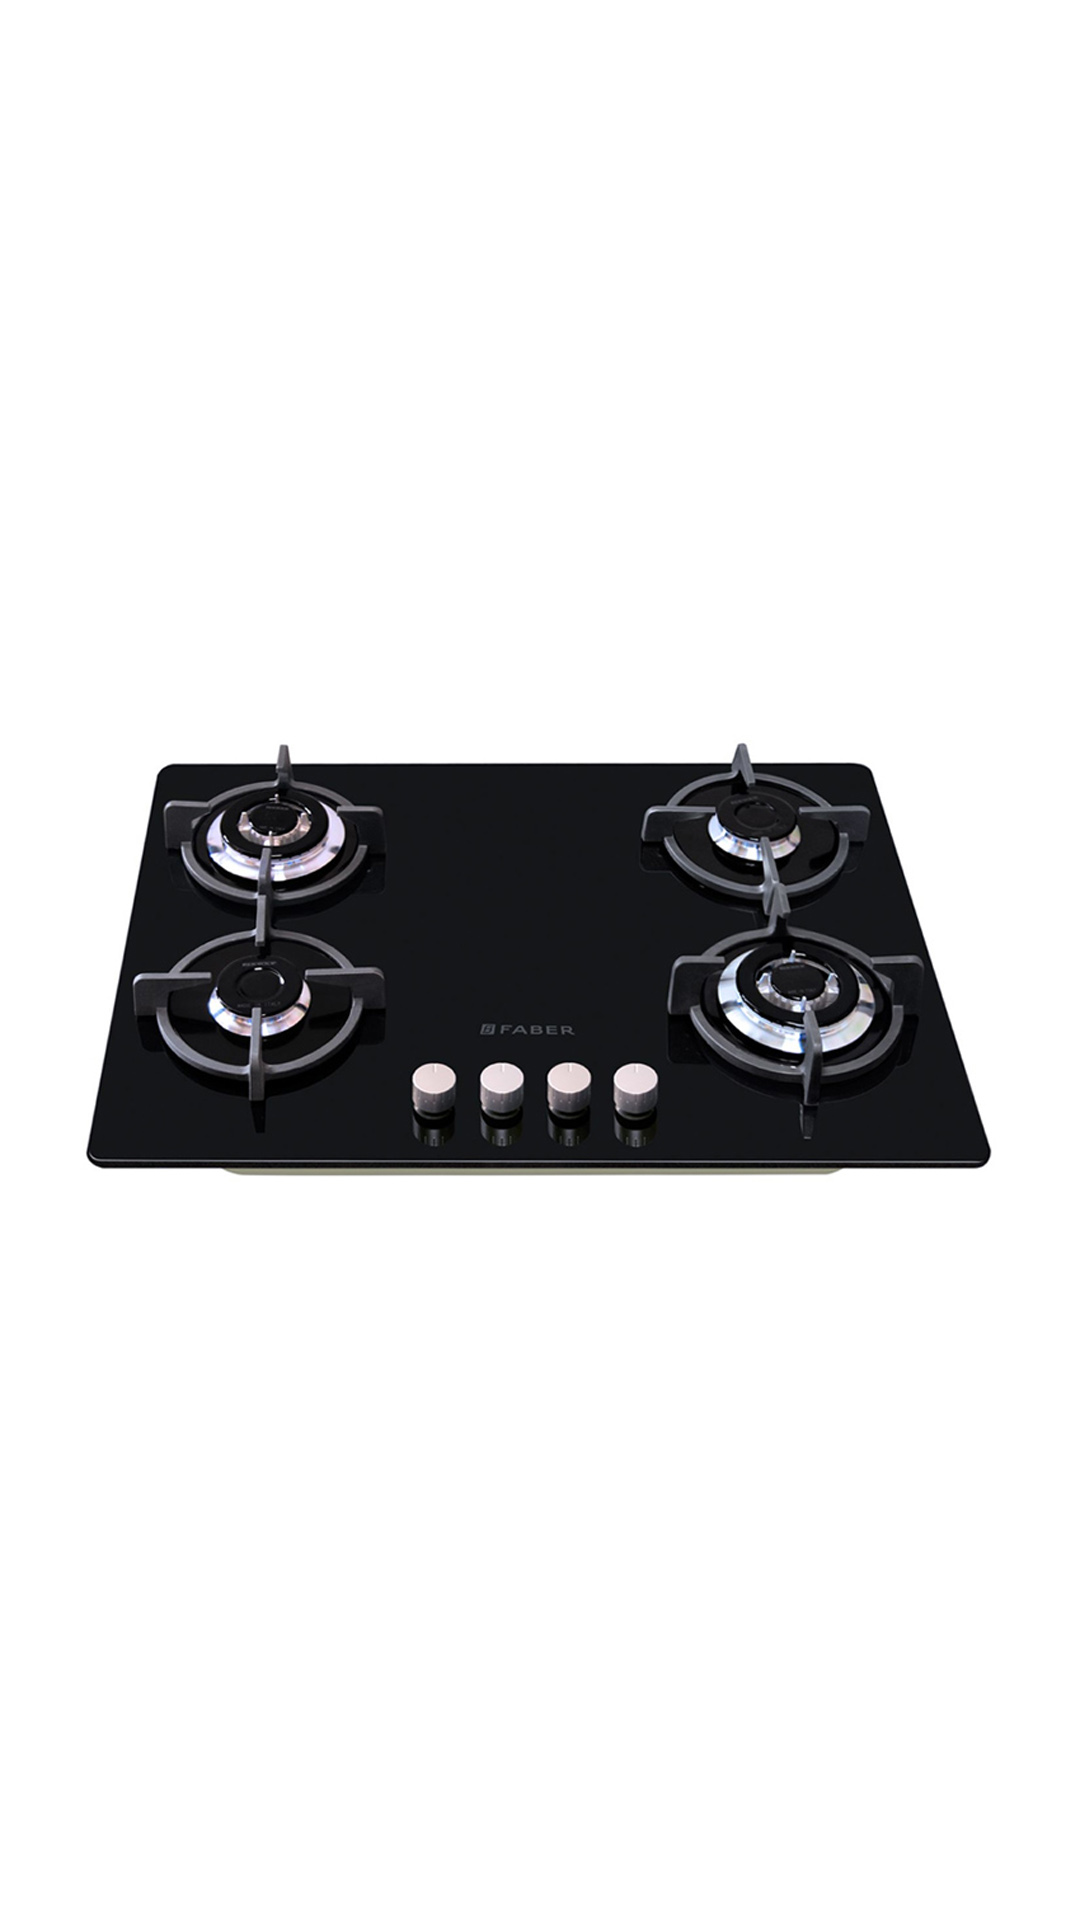 GB 40 MT CIG AI 4 Burner Built In Hob Gas Cooktop